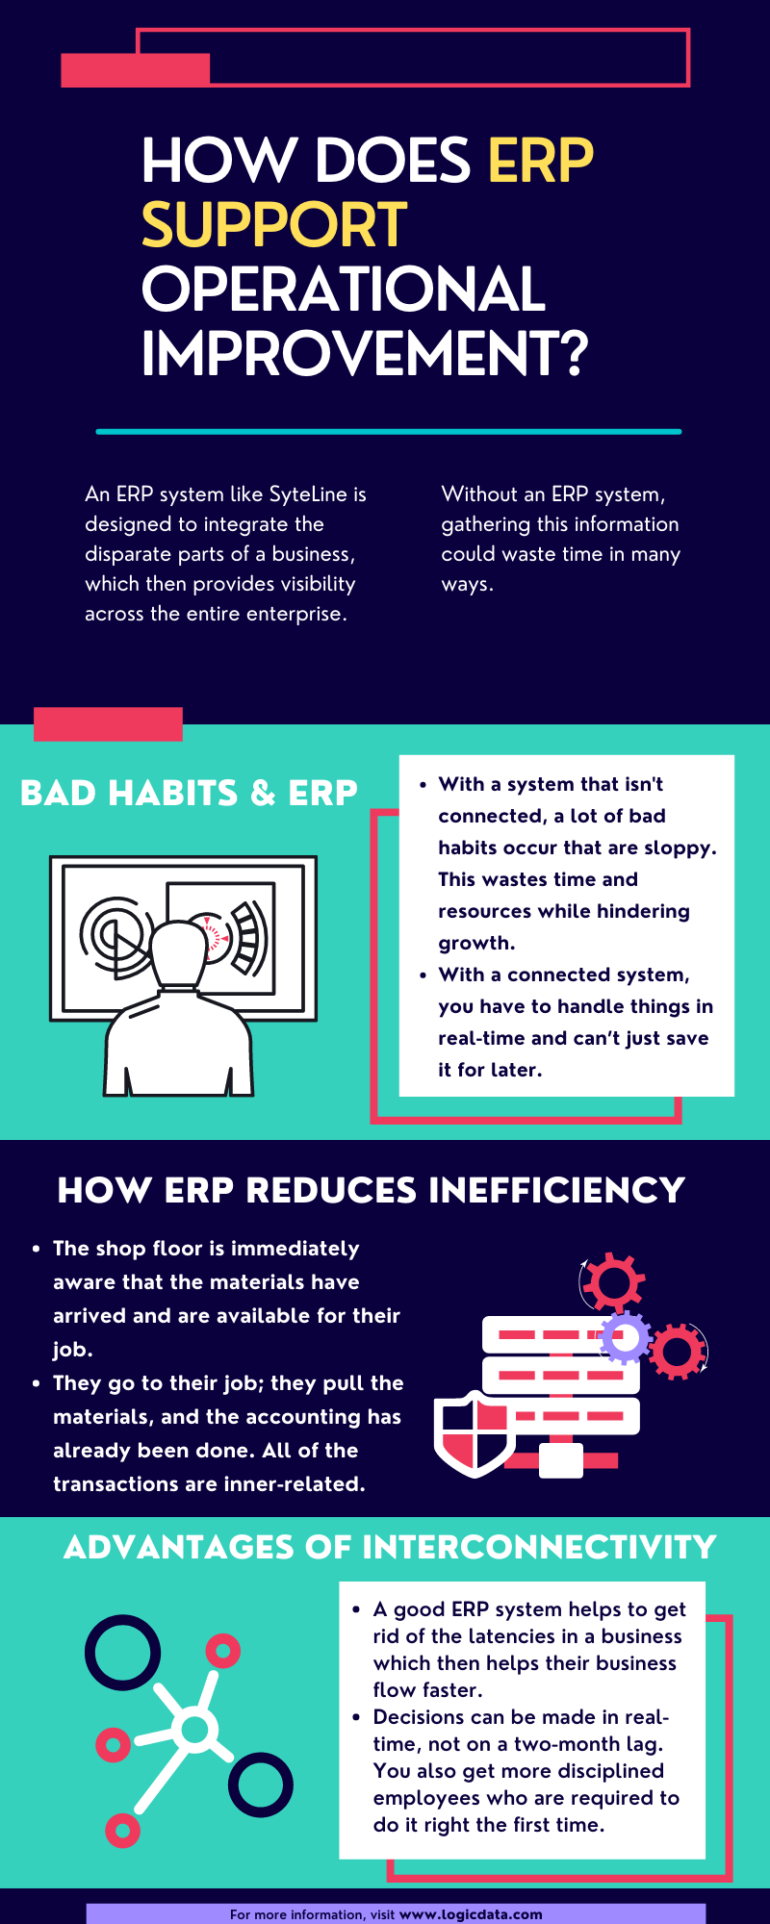 How Does ERP Support Operational Improvement